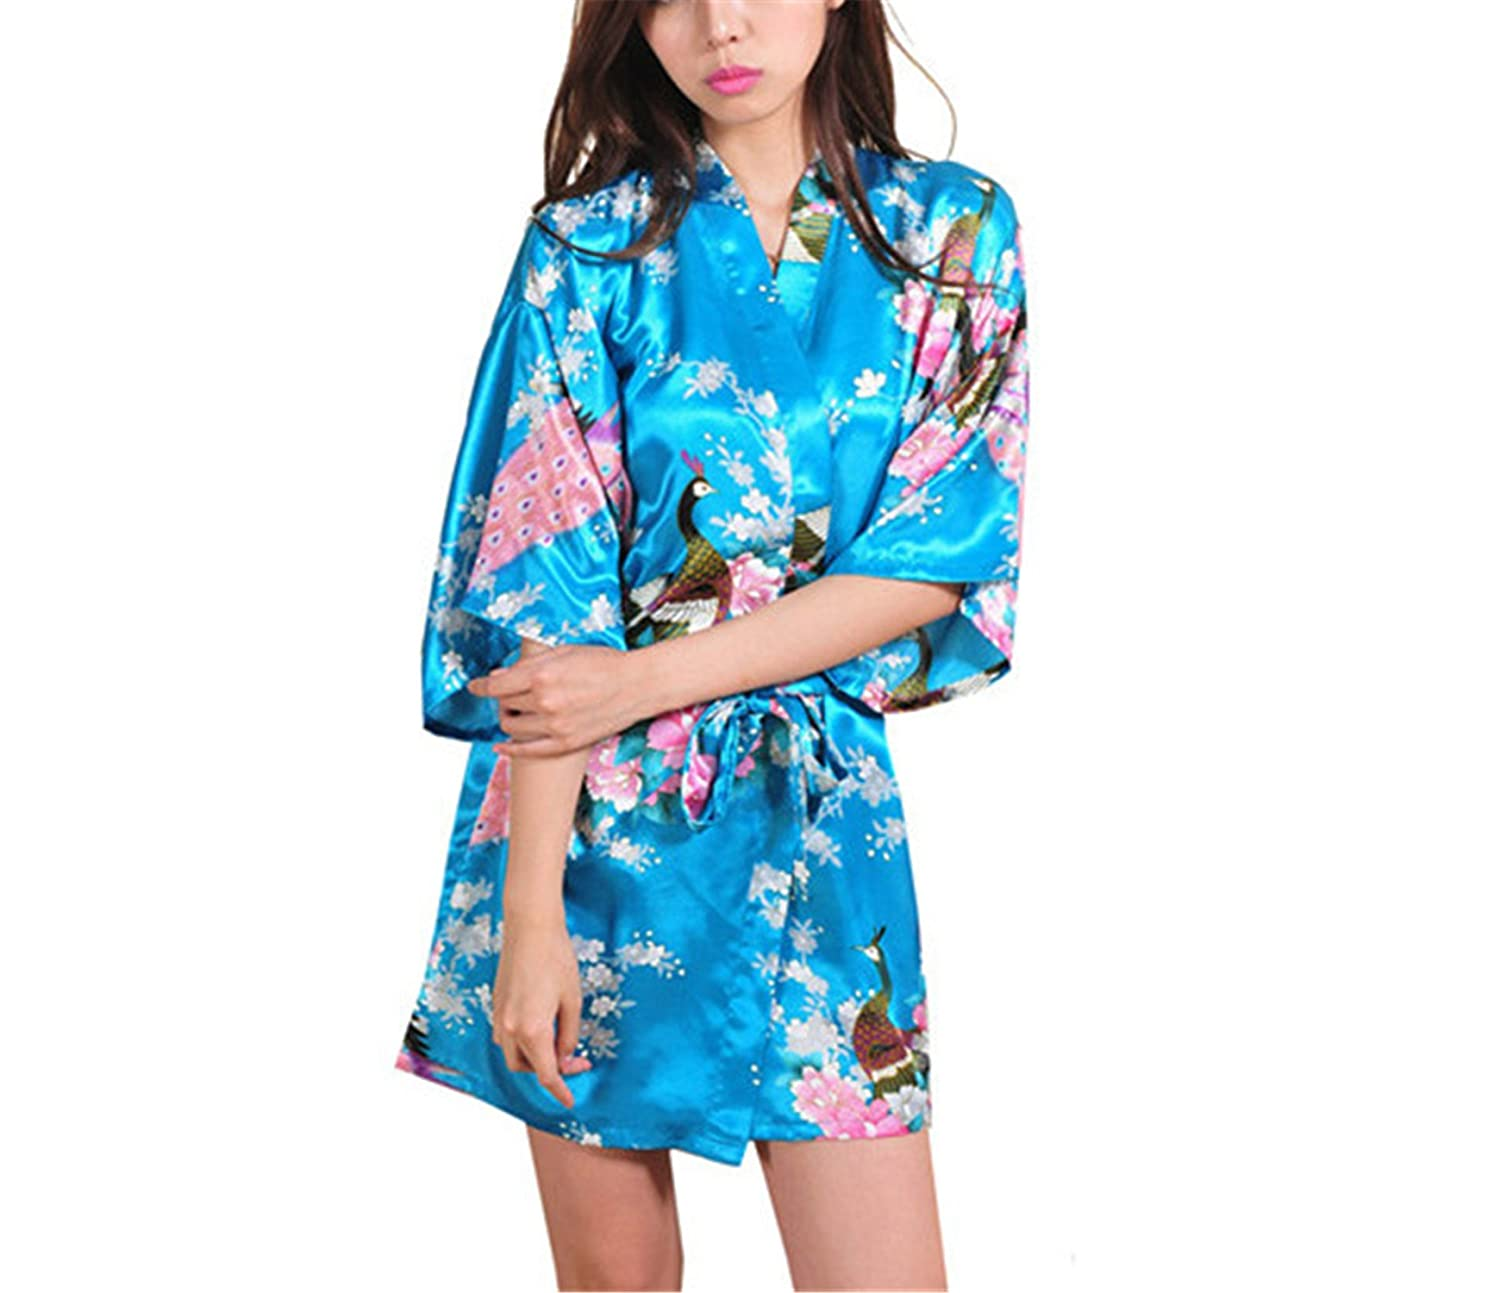 RENXINGLI Women Printed Floral Kimono Dress Gown Chinese Style Silk Satin Robe Nightgown at Amazon Womens Clothing store: